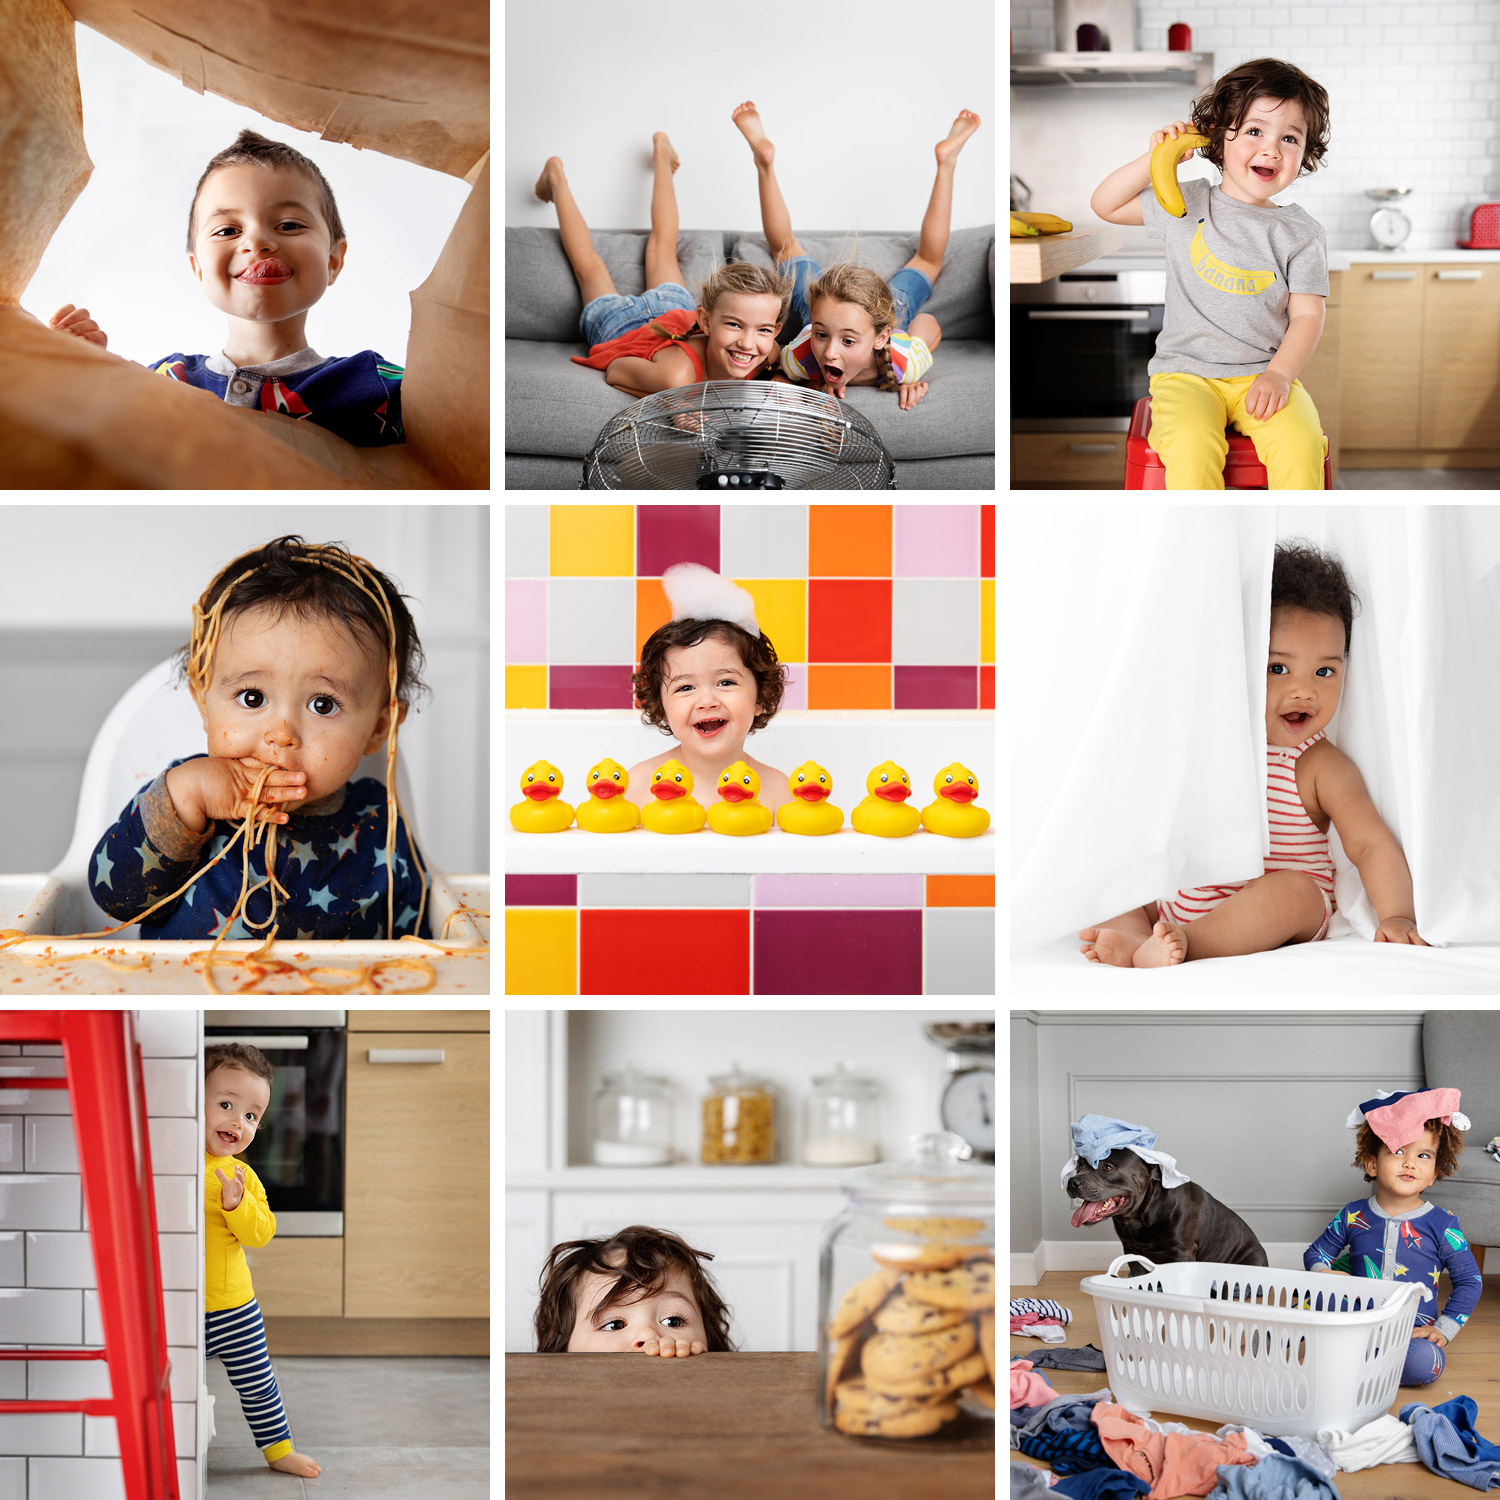 Fun baby and children images by Lisa Tichané, advertising kids and babies photographer